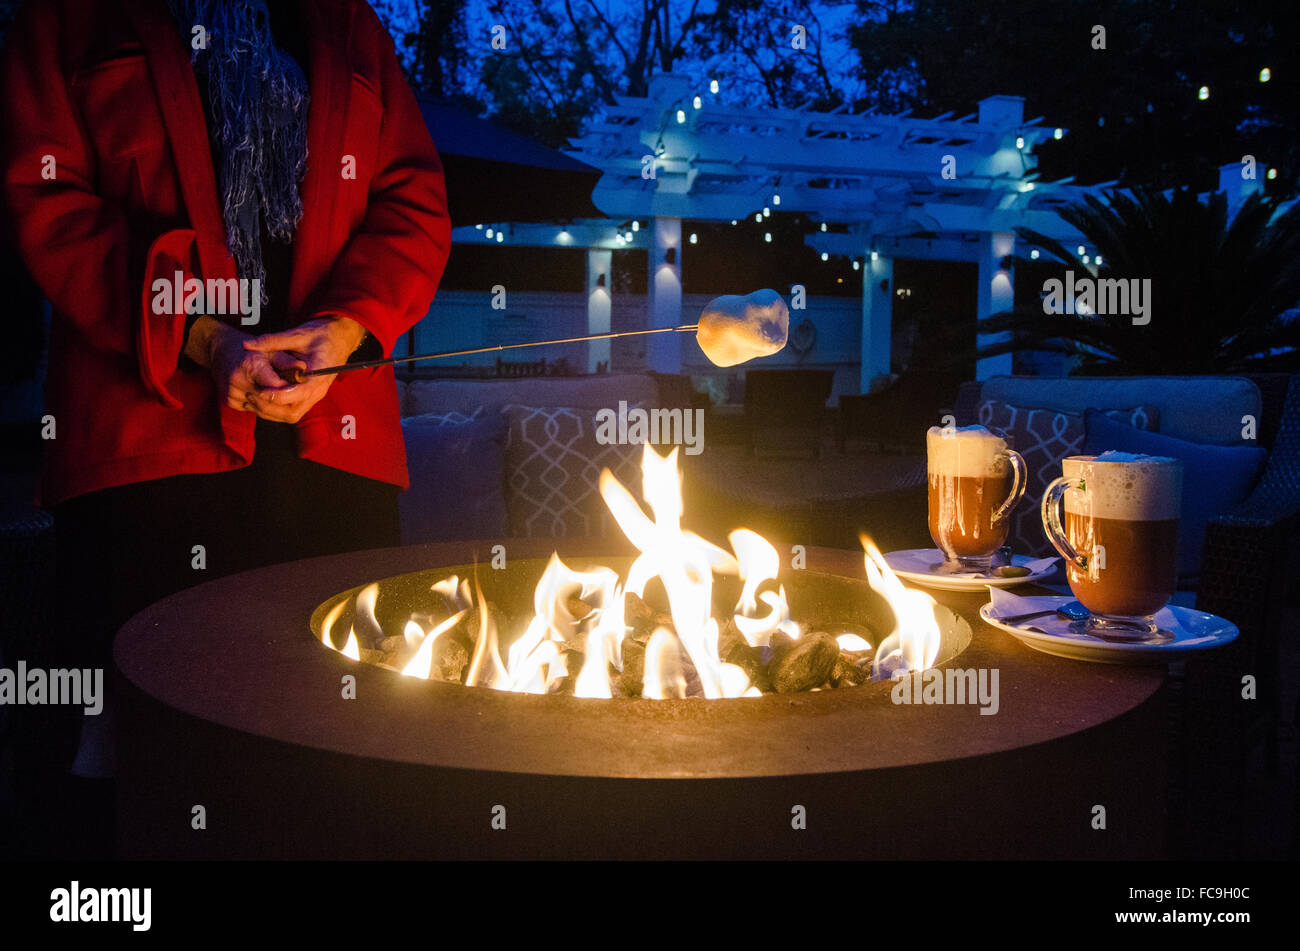 On a cool autumn evening, a woman warms up by a fireplace with s'mores and hot chocolate. - Stock Image